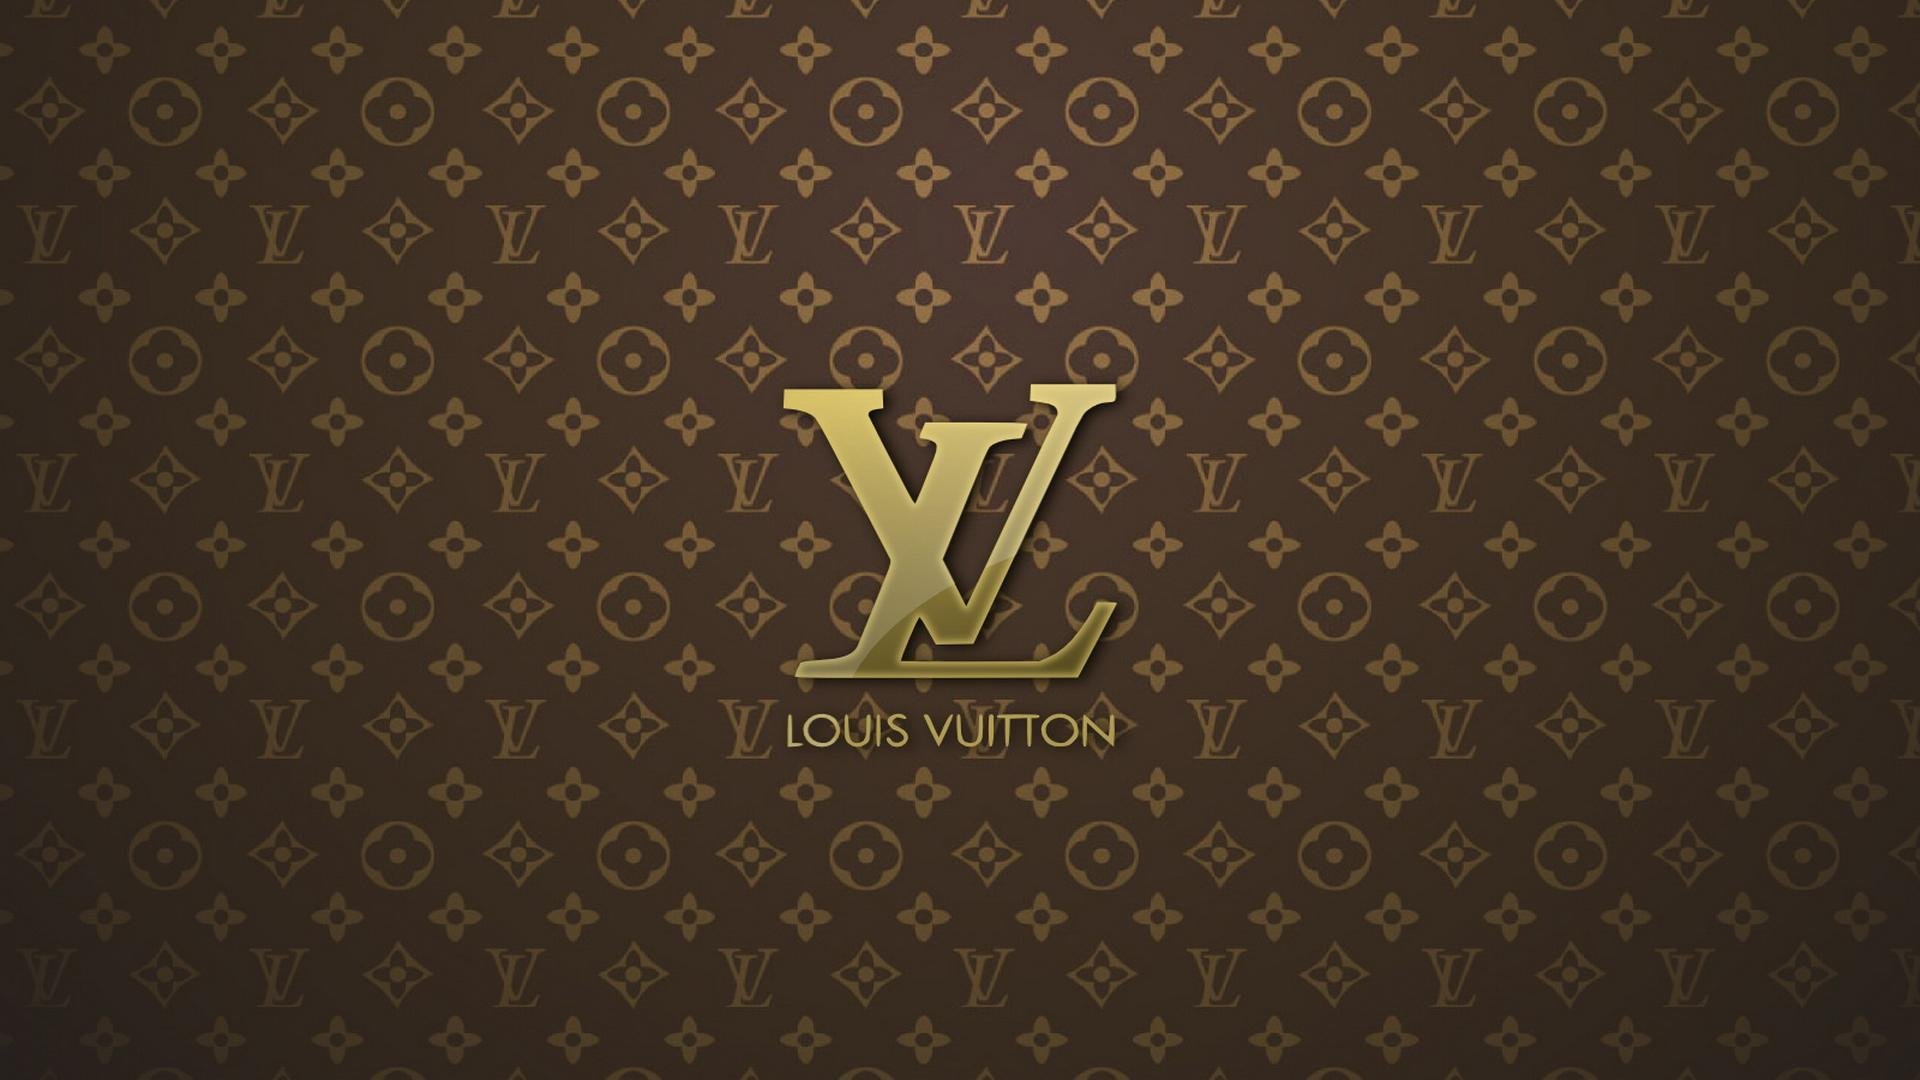 Inspirations from Louis Vuitton dolce gabbana Dolce Gabbana uses Fake Logos as Inspiration for new Iconic Tees Inspirations from Louis Vuitton cover dolce gabbana Dolce Gabbana uses Fake Logos as Inspiration for new Iconic Tees Inspirations from Louis Vuitton cover